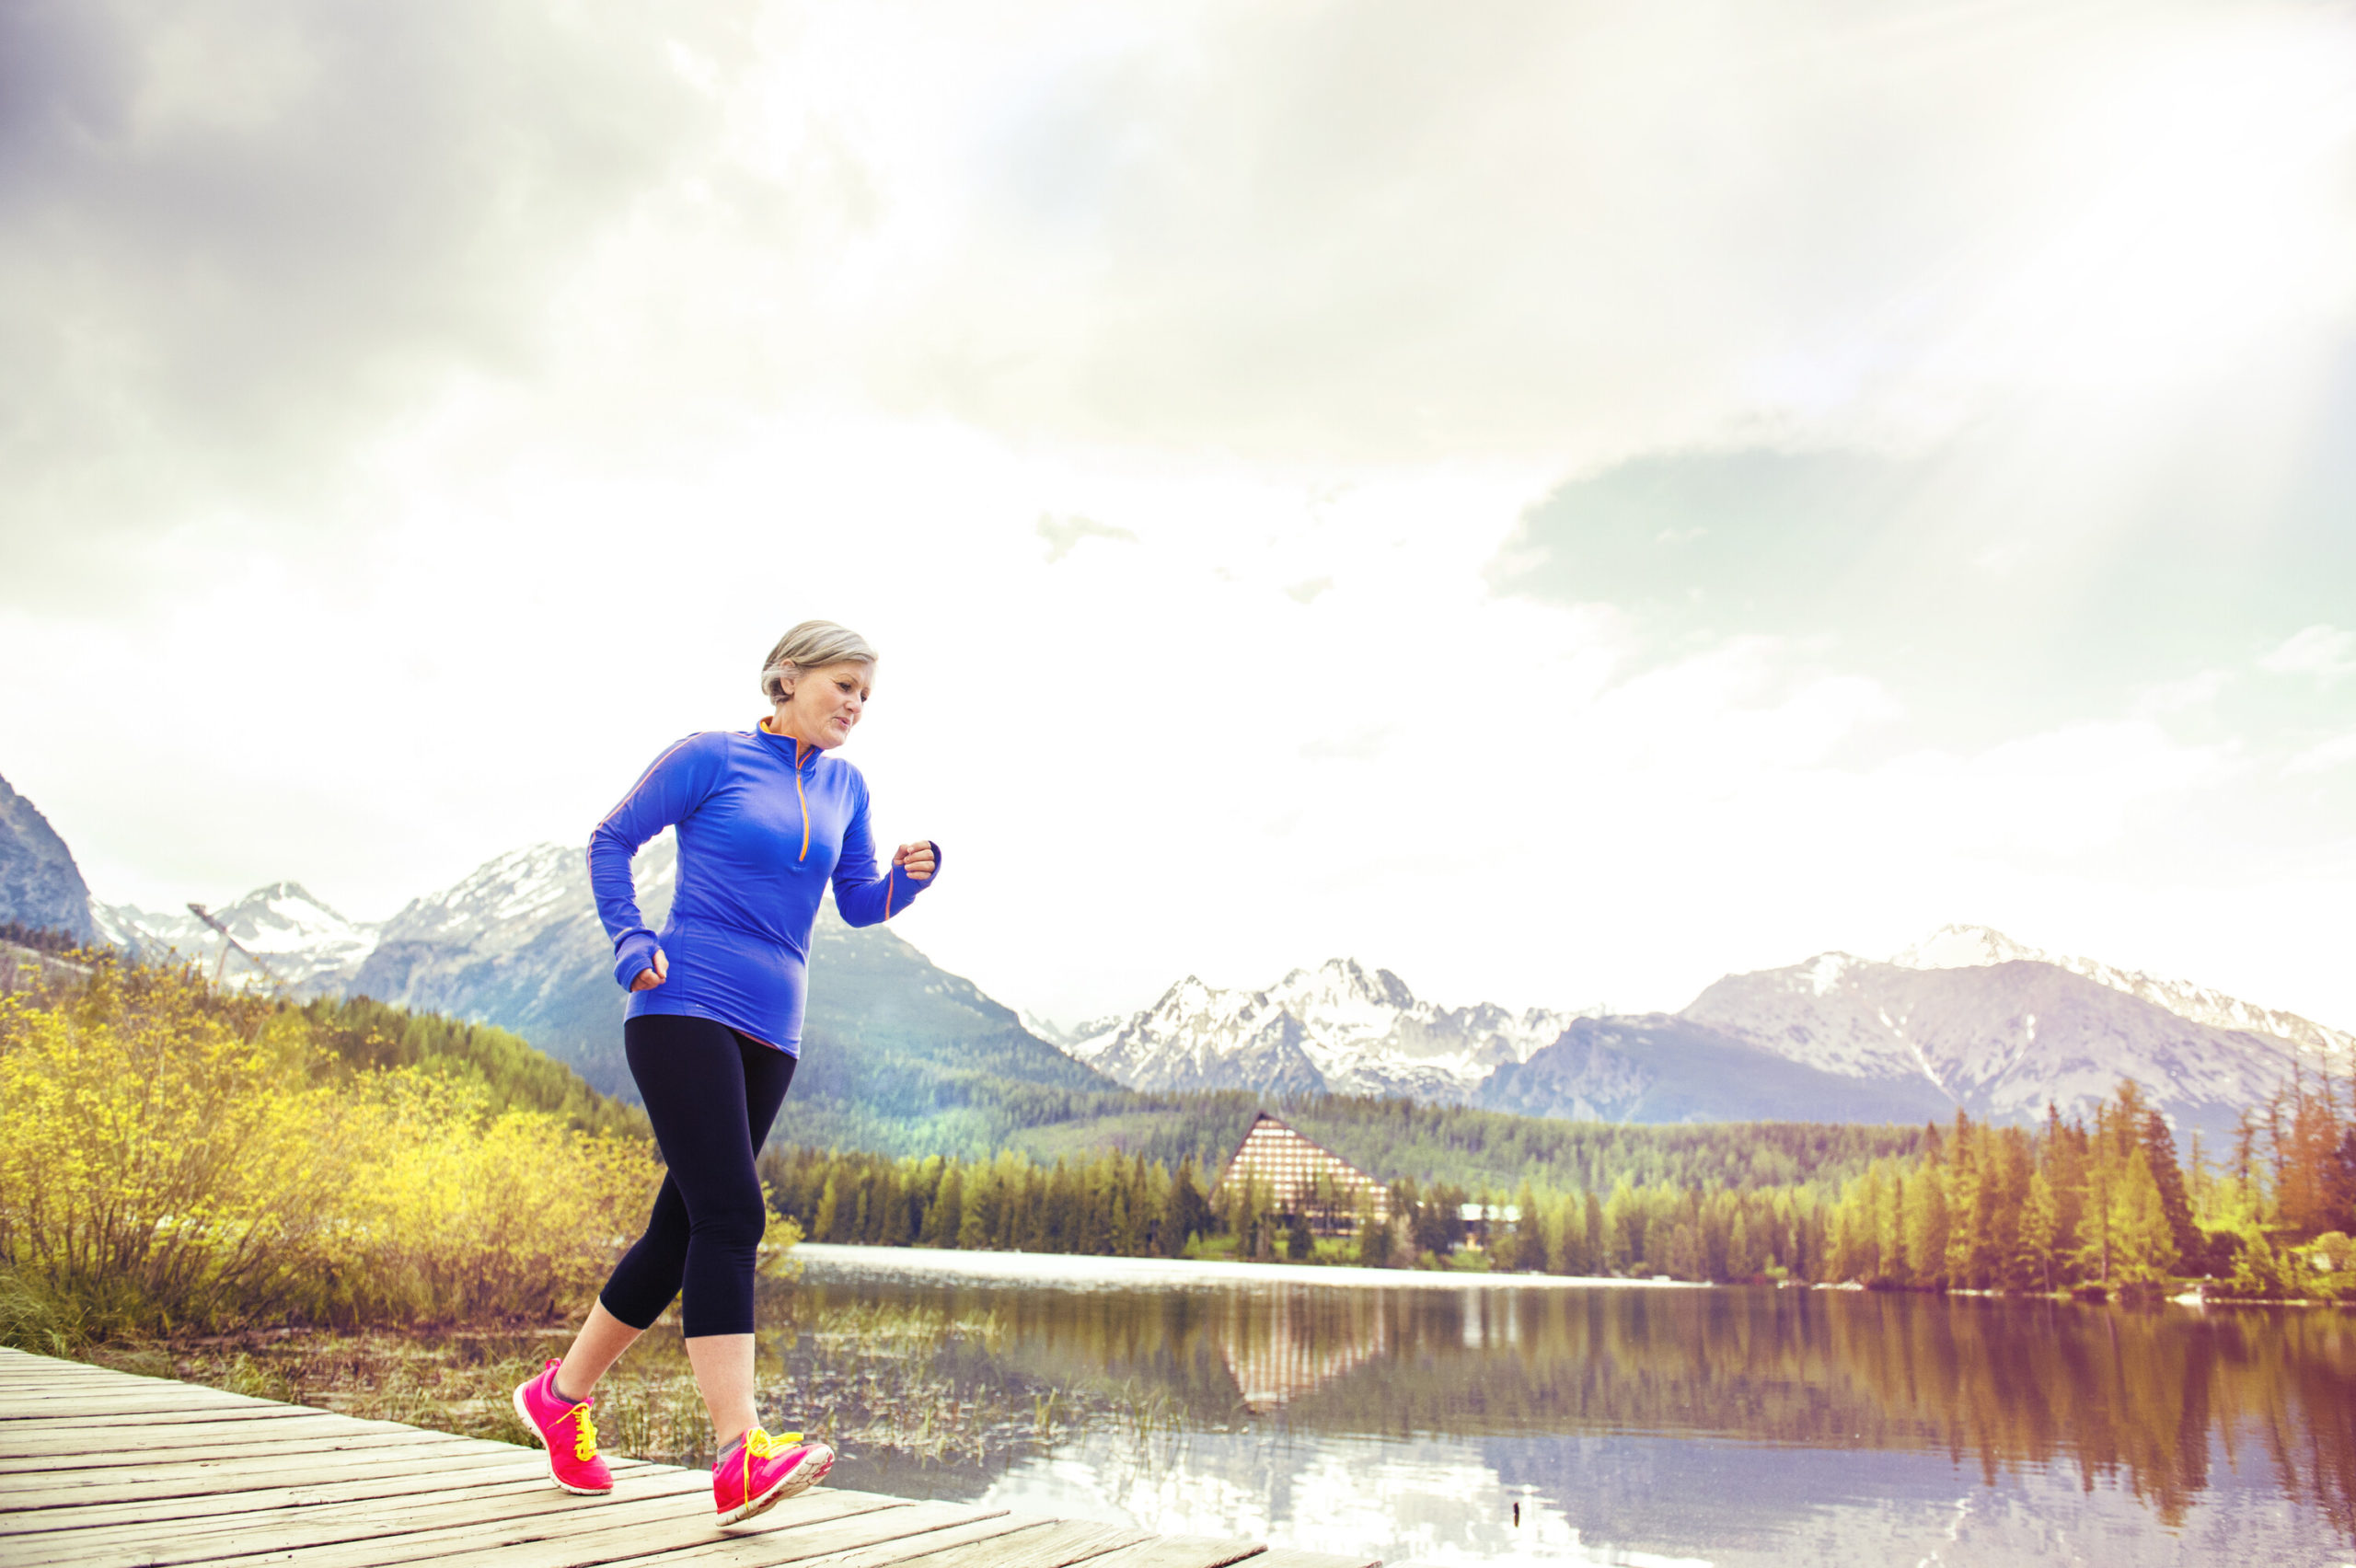 Senior woman jogging on a wooden plank trail with mountains and hills in the background